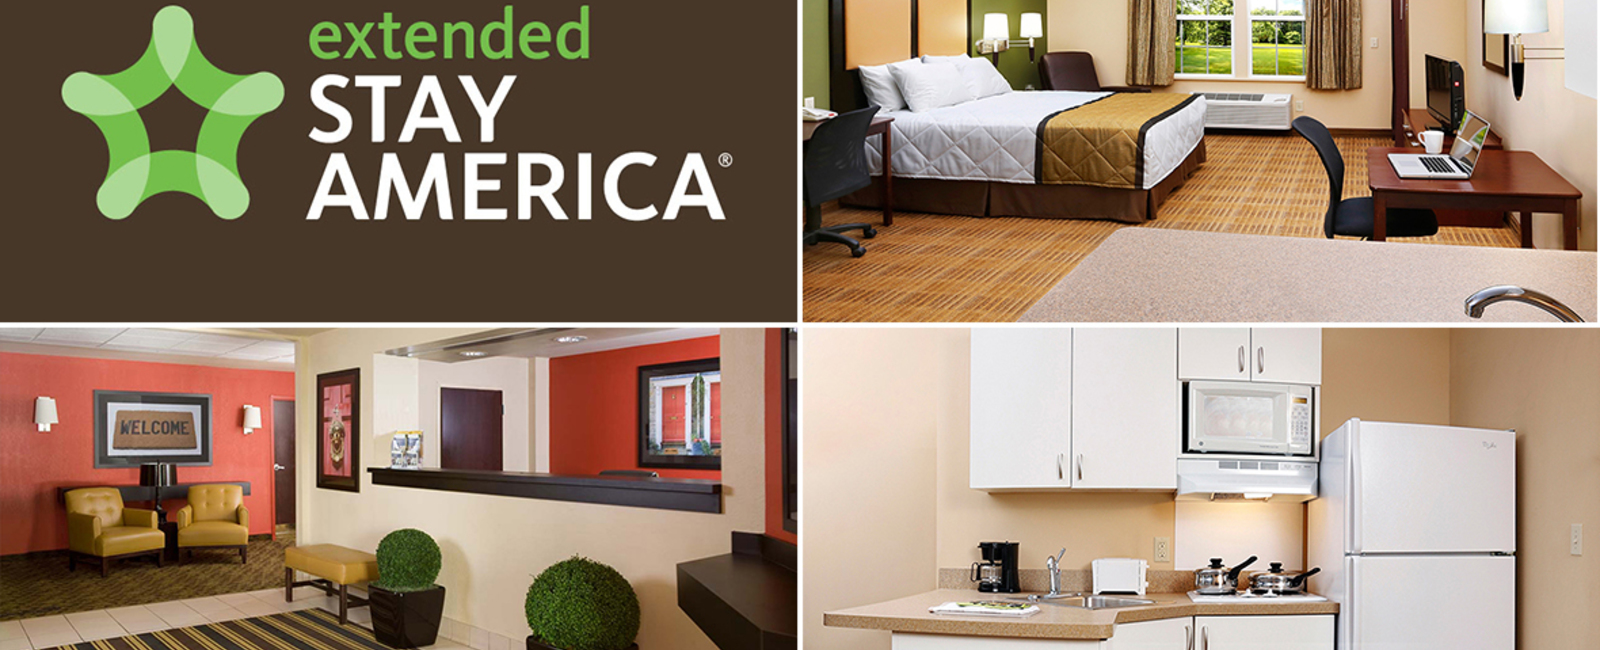 Extended Stay America - Union Park